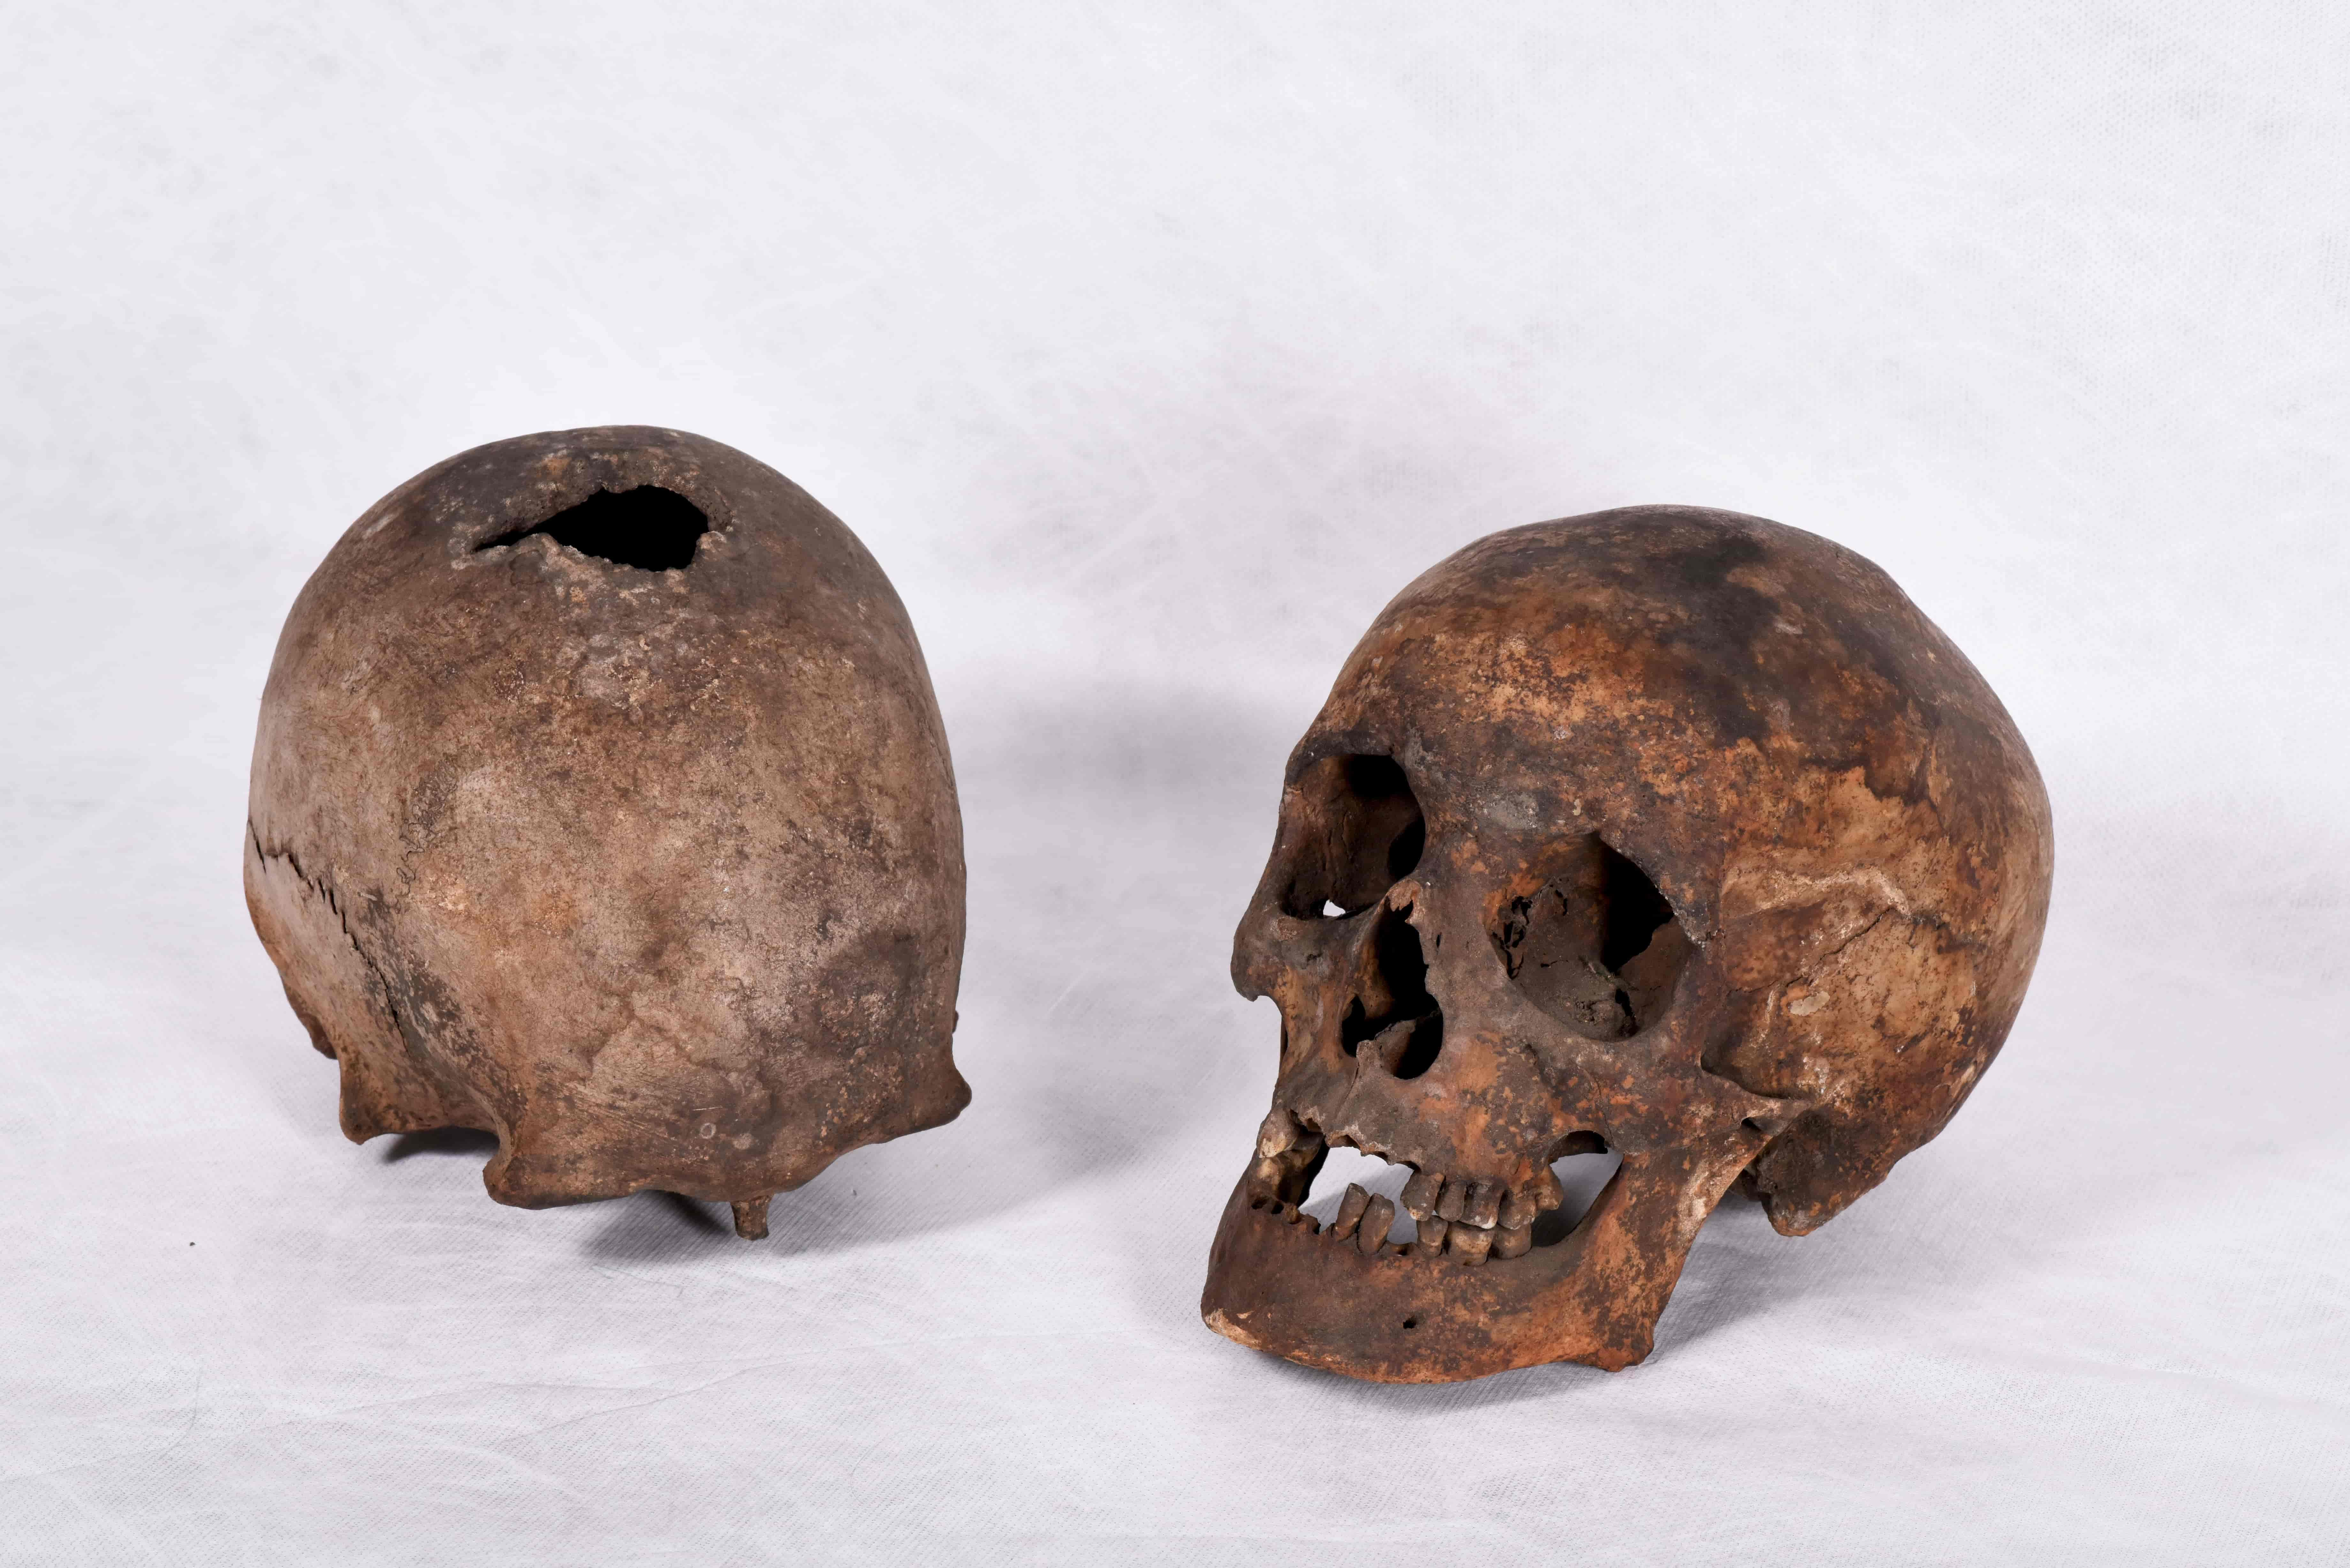 Two skulls on a white background. One of the skulls has a hole in the top